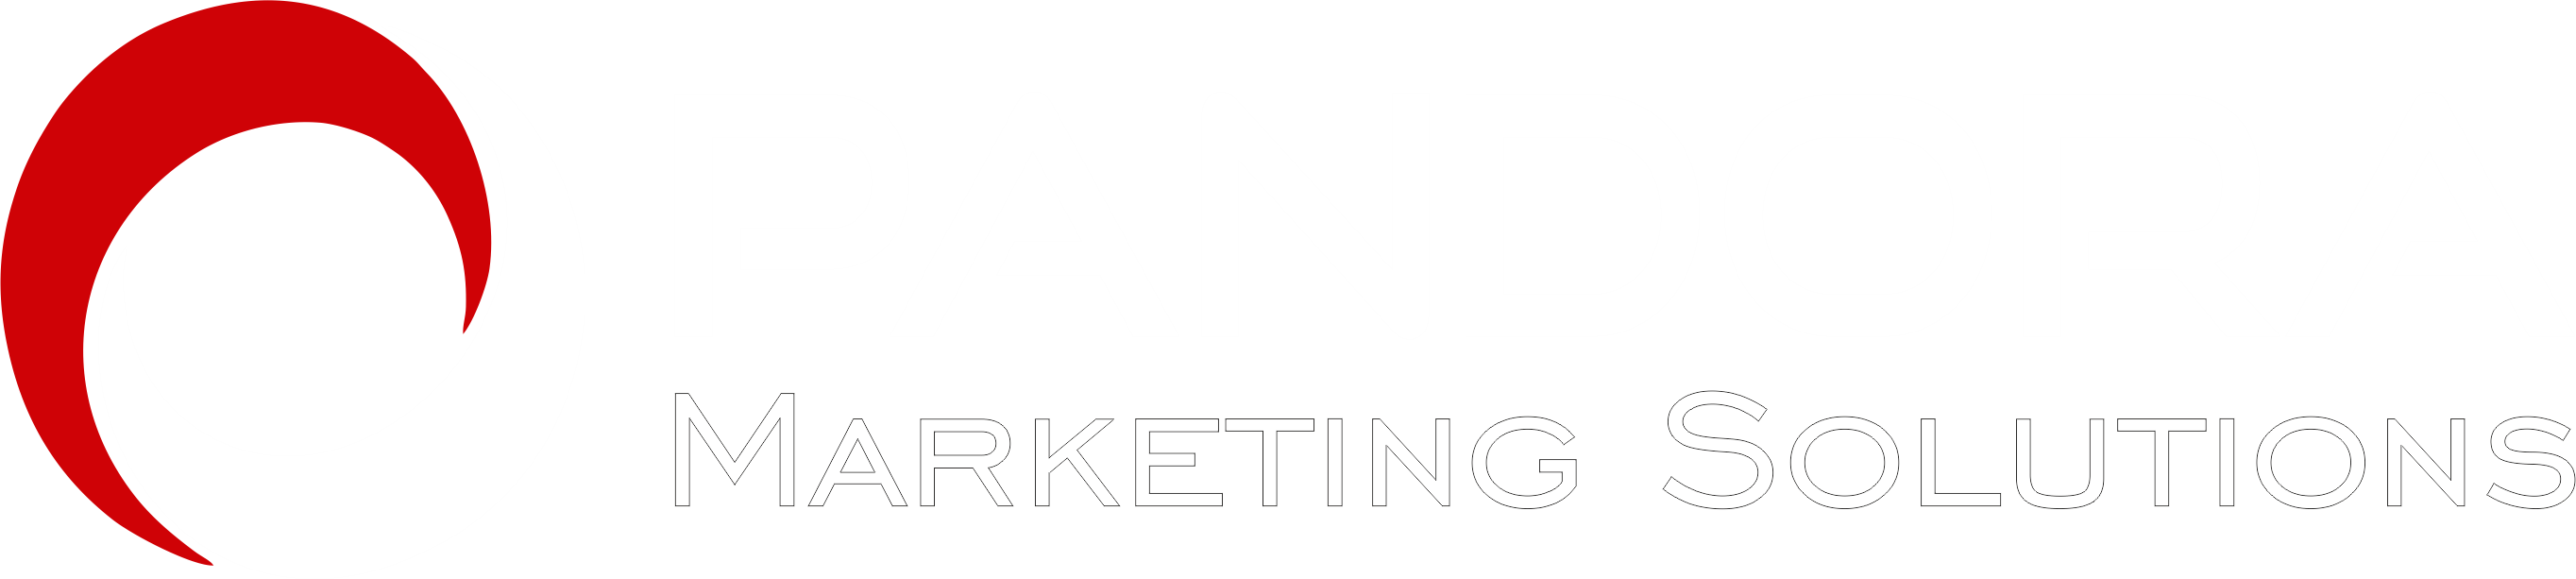 Pandora Marketing Solutions Ltd.